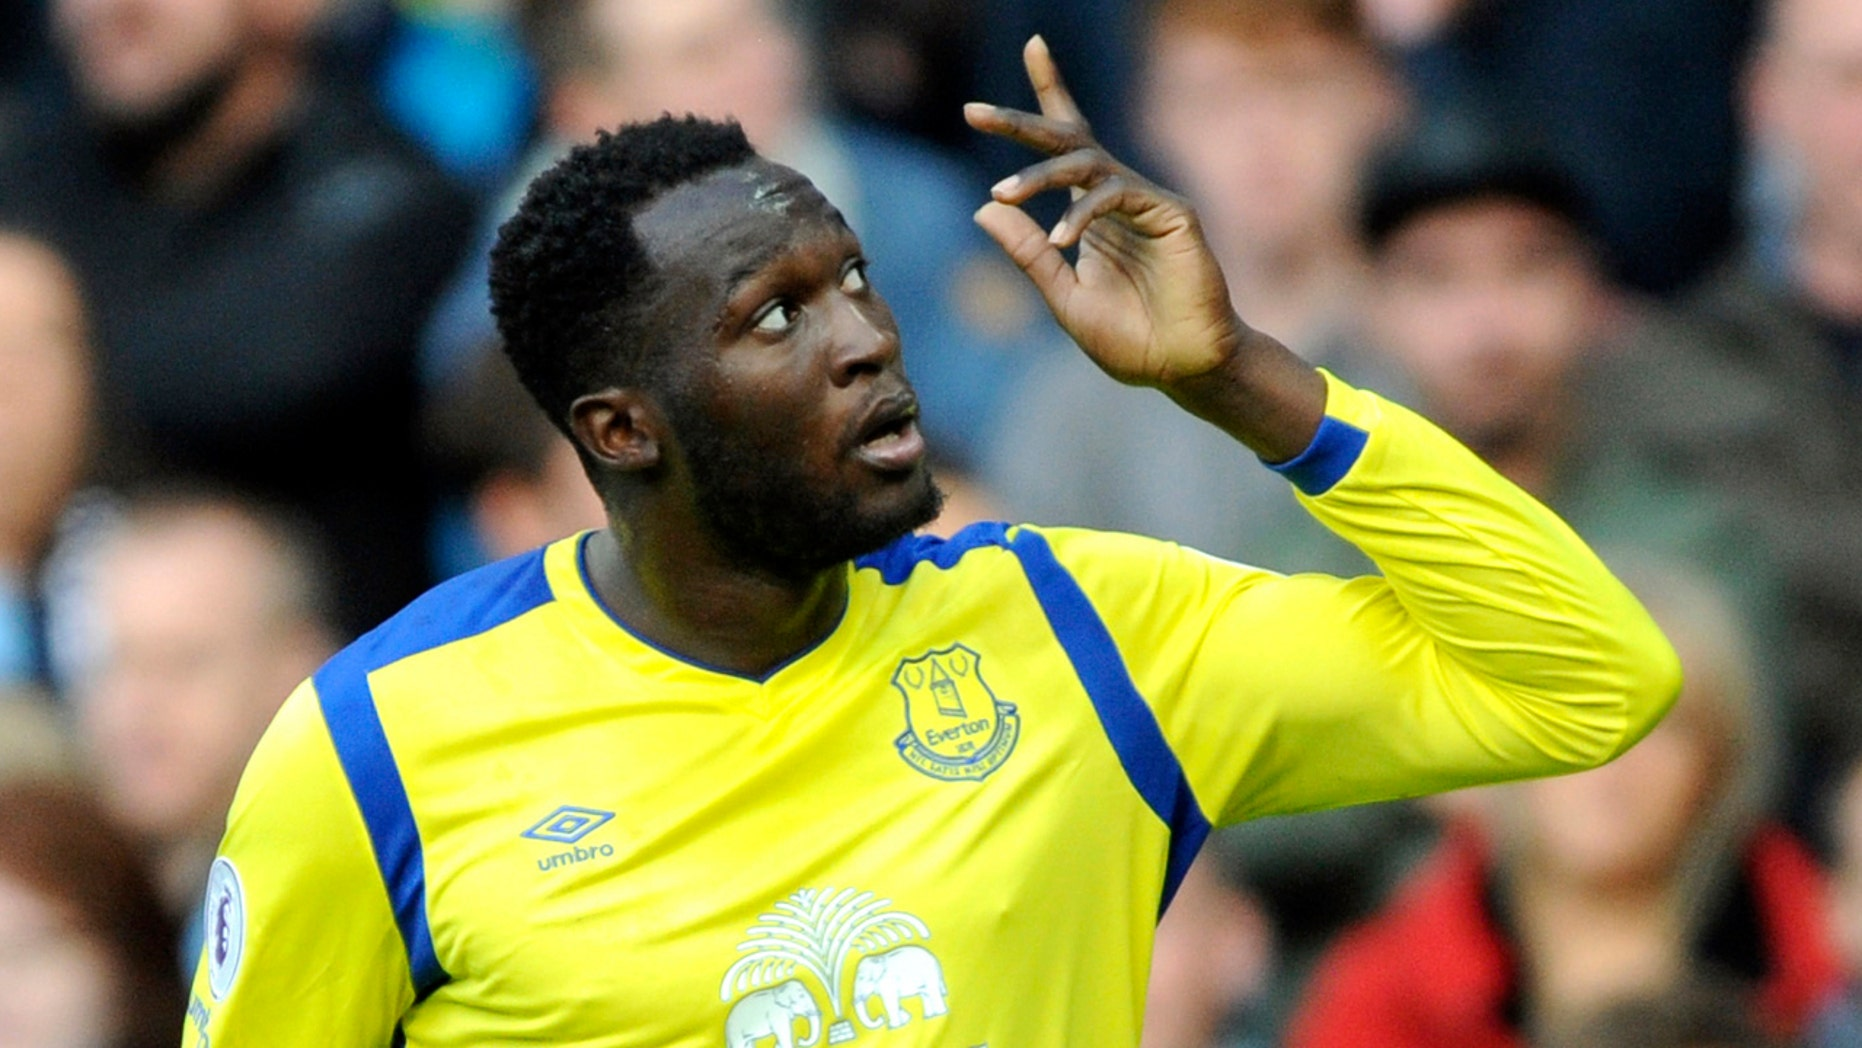 In this Saturday, Oct. 15, 2016 file photo, Everton's Romelu Lukaku celebrates after scoring during the English Premier League soccer match between Manchester City and Everton at the Etihad Stadium in Manchester, England.